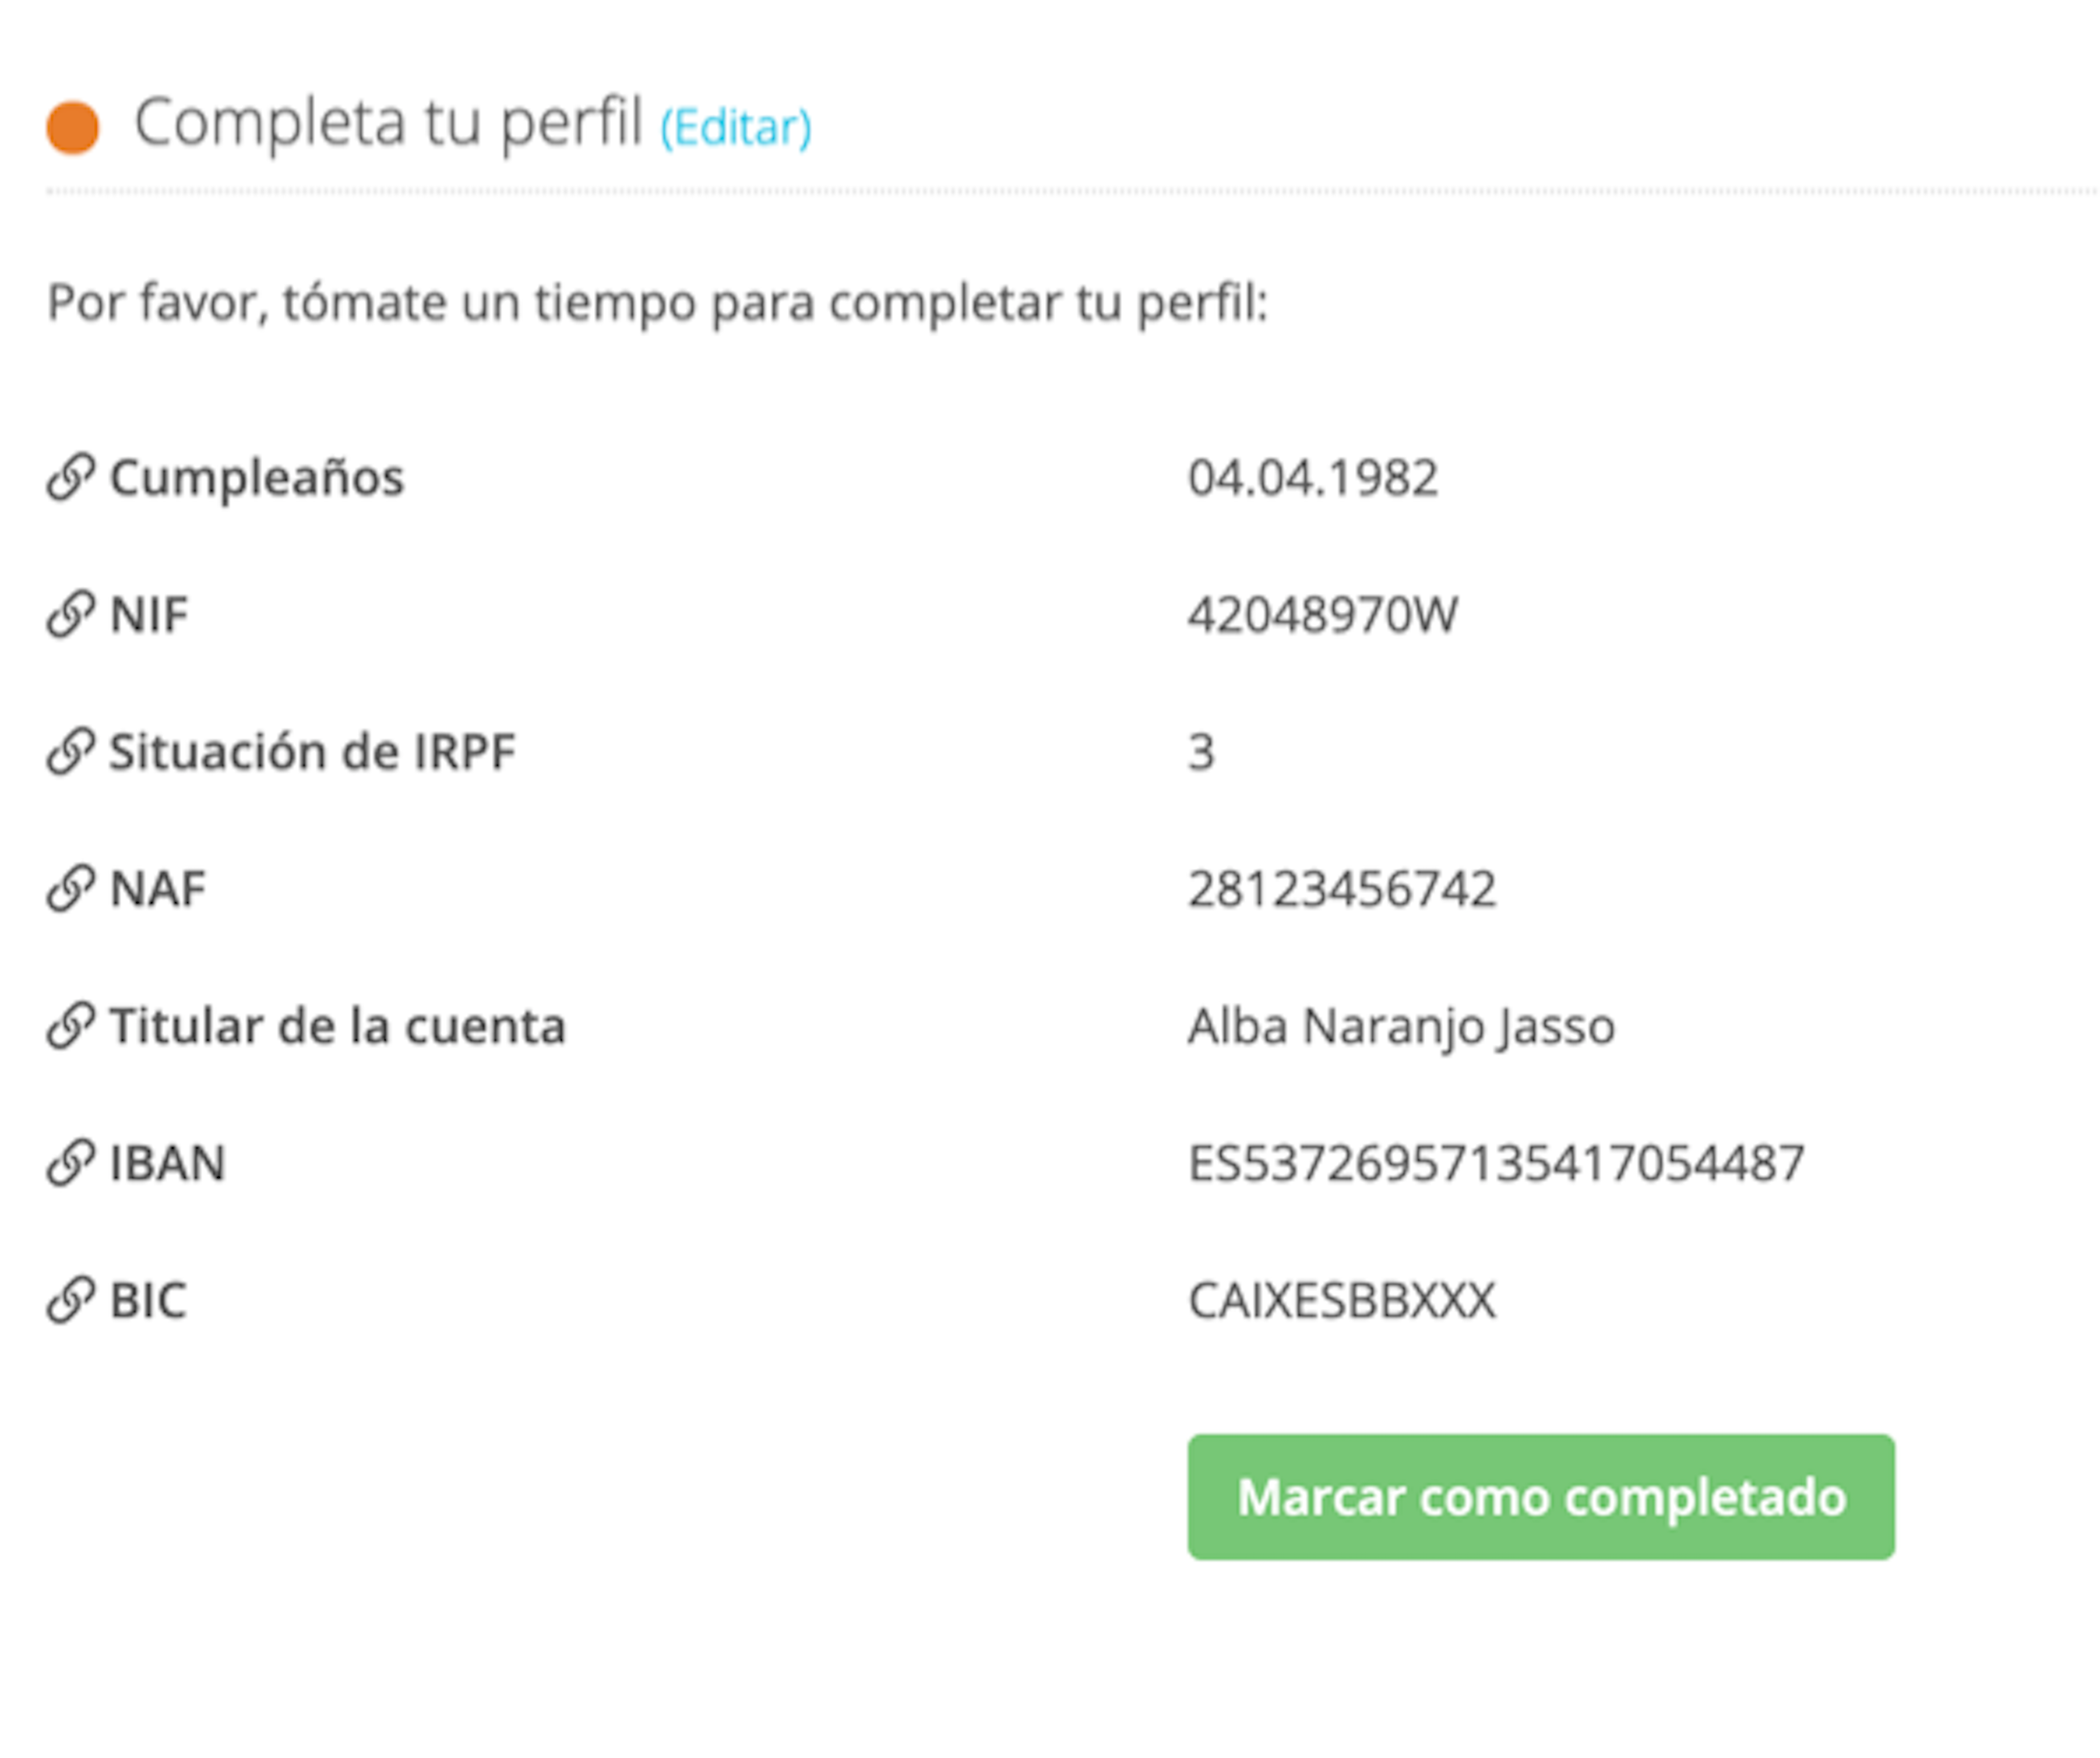 onboarding-process-task-completed_es.png